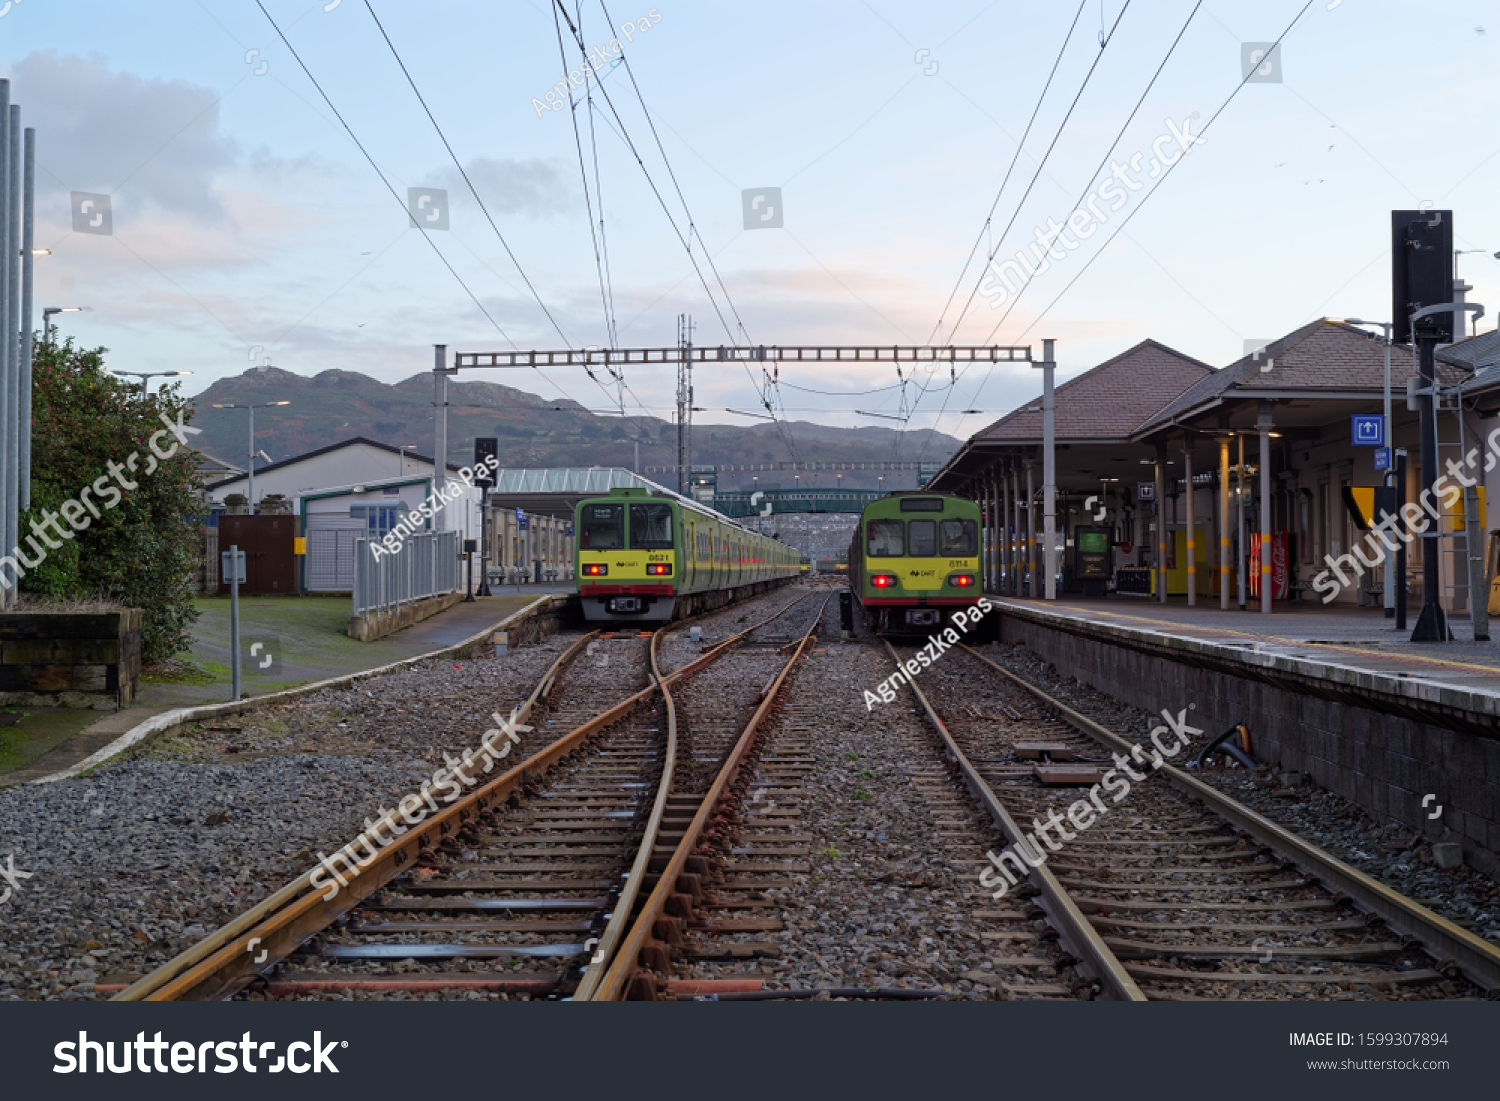 BRAY, CO. WICKLOW, IRELAND - DECEMBER 26, 2019: A front view of DART (Dublin Area Rapid Transit) trains at railway station in Bray, Ireland. Famous Bray Head mountain in the background.